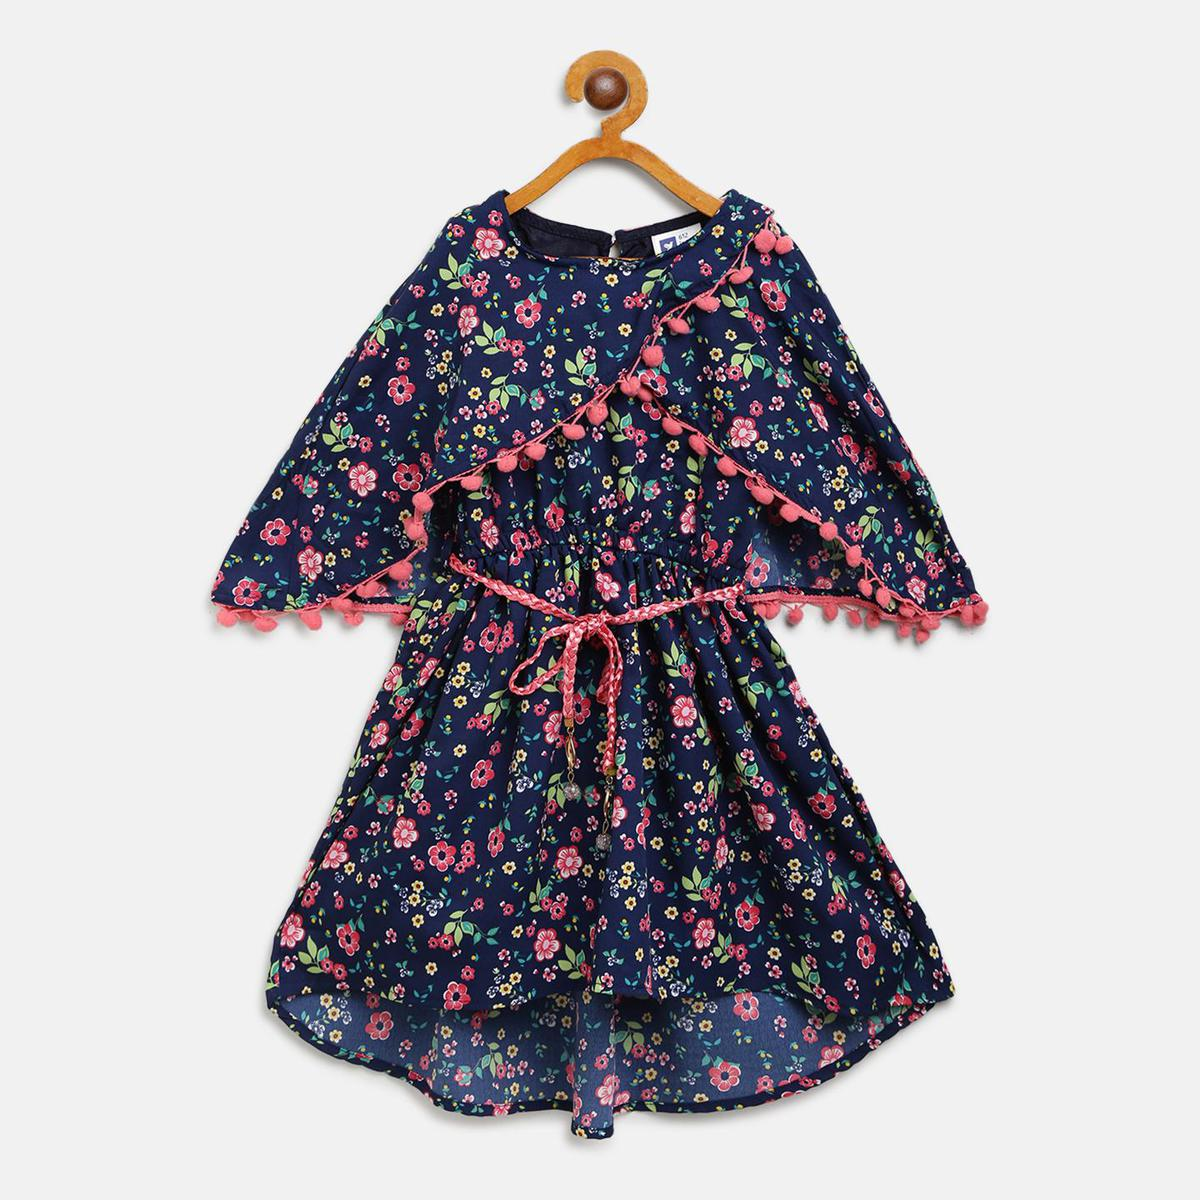 612 League - Blue Colored Printed With Attached Cape Crepe Dress For Girls